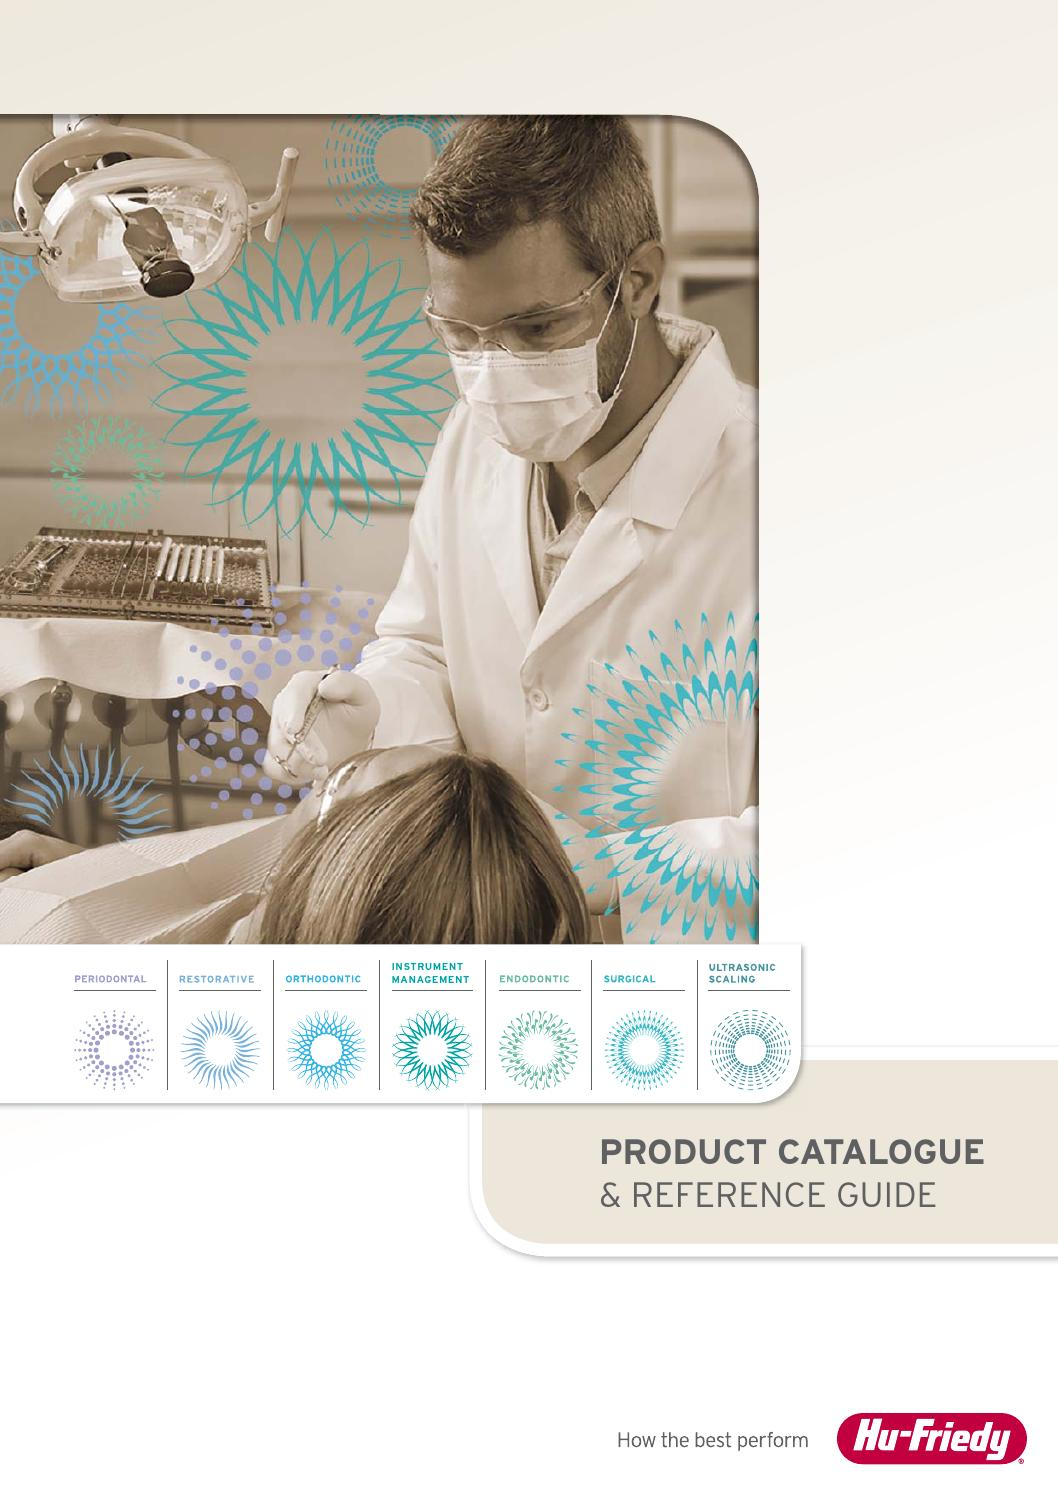 Catalogo hu friedy by Suissdent Deposito Dental issuu